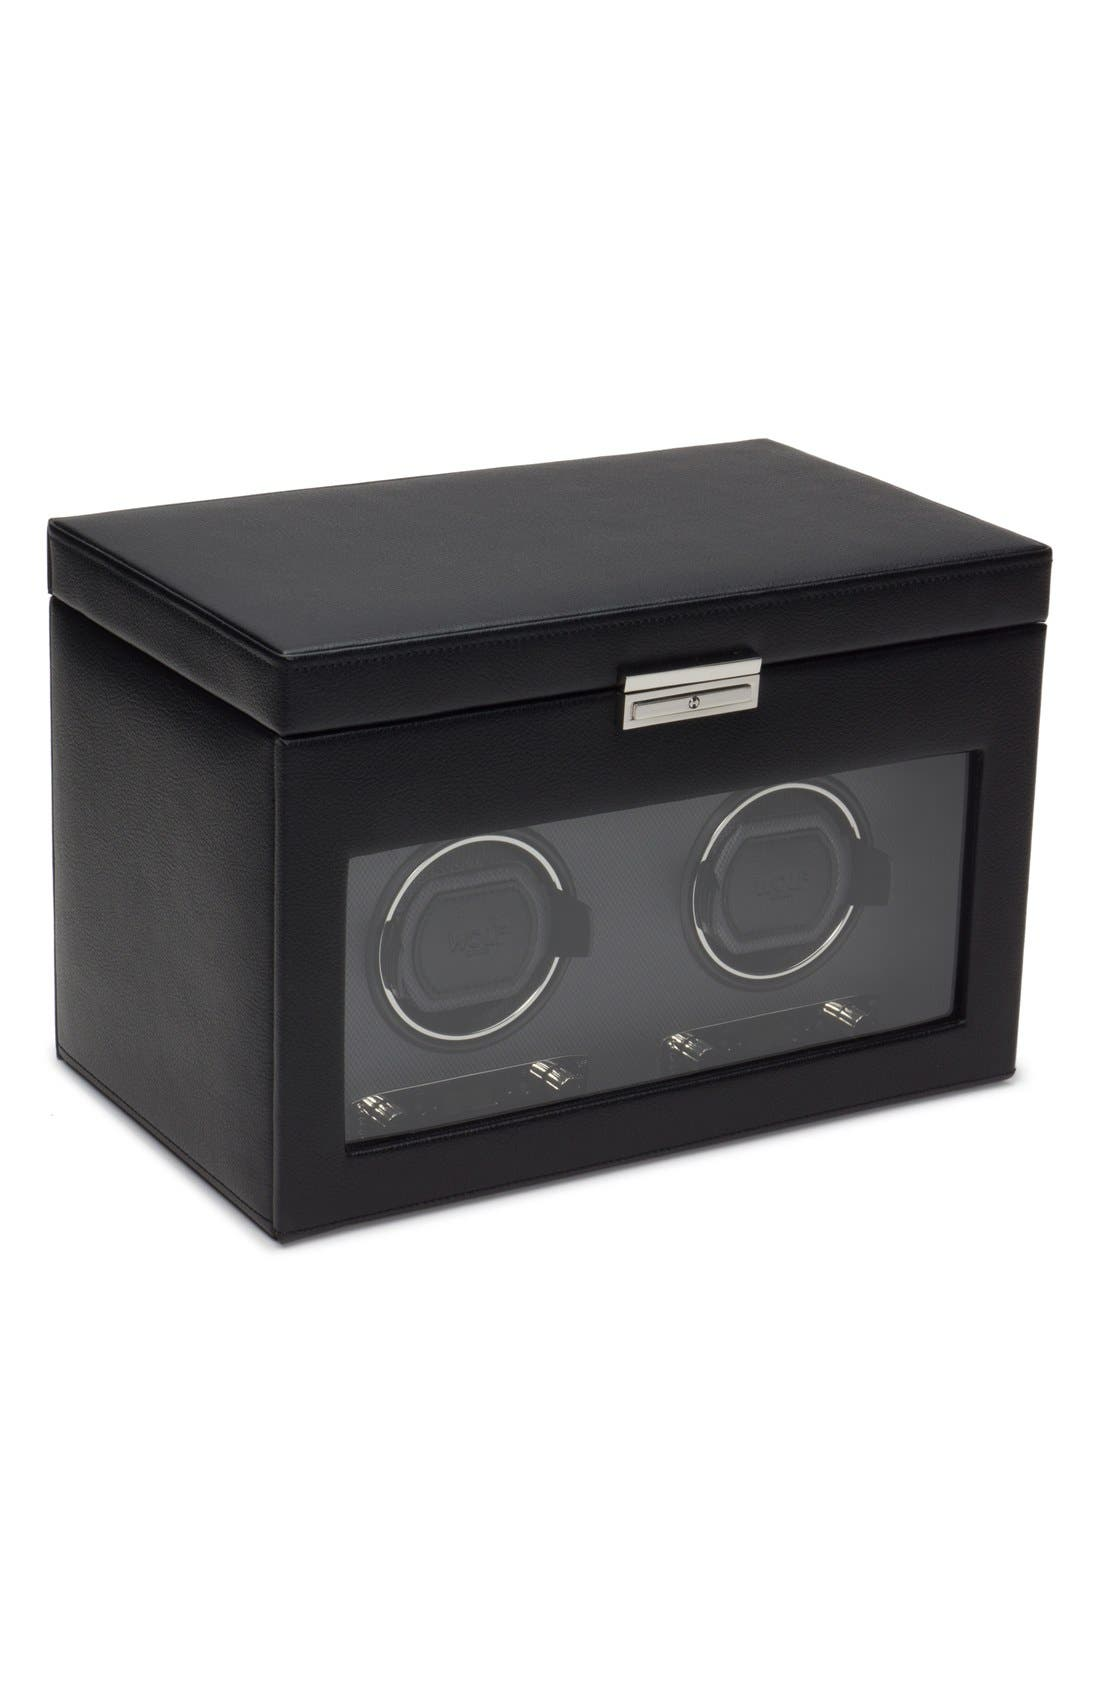 Viceroy Double Watch Winder & Storage Space,                             Main thumbnail 1, color,                             BLACK